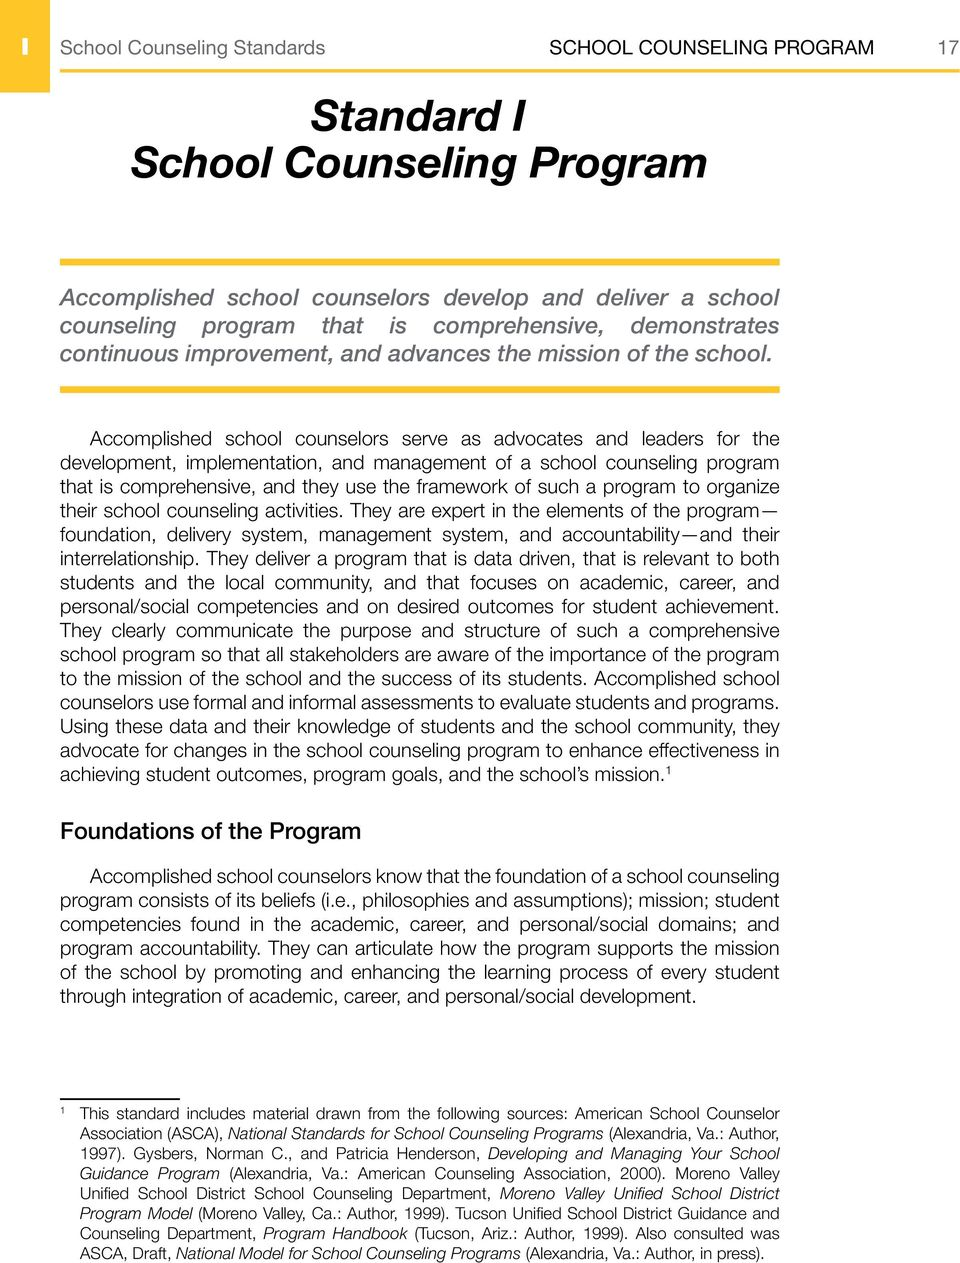 Accomplished school counselors serve as advocates and leaders for the development, implementation, and management of a school counseling program that is comprehensive, and they use the framework of